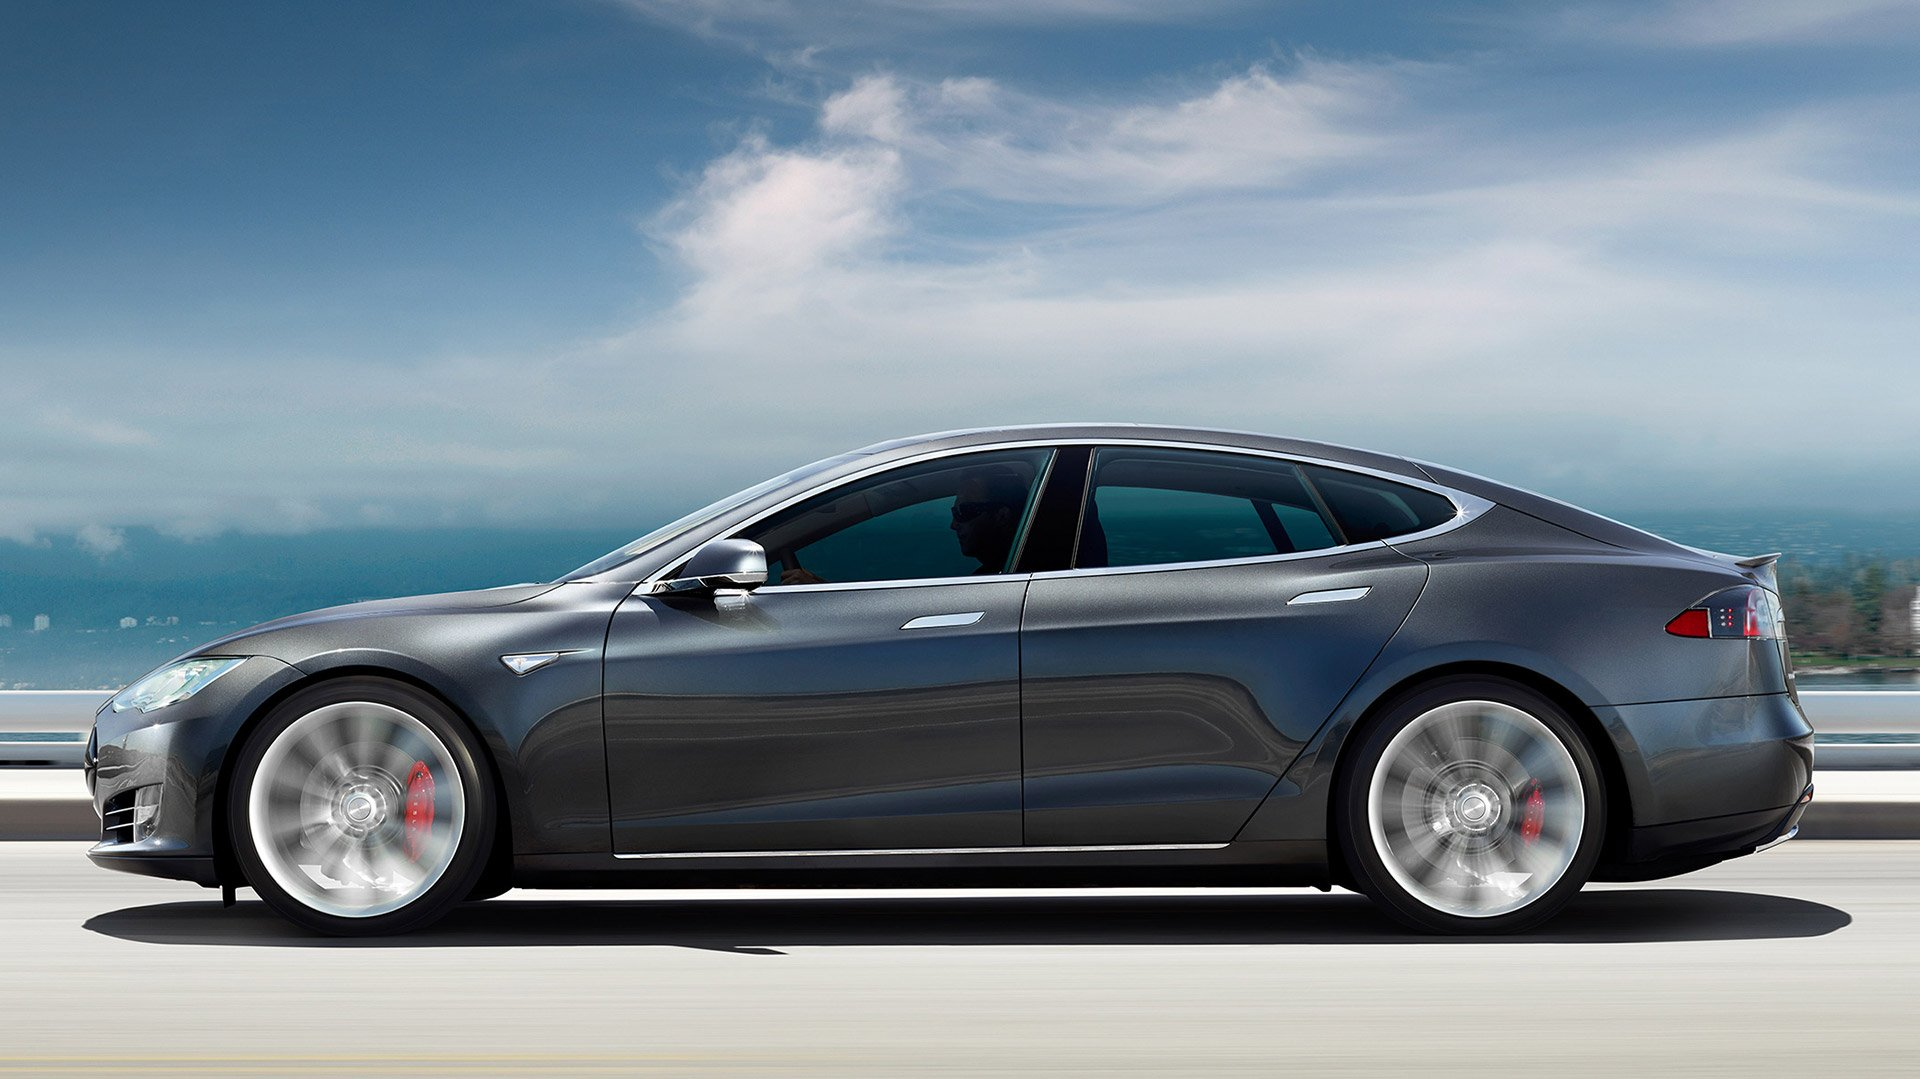 Used Tesla Model S Prices Show Signs Of Weakness Tesla